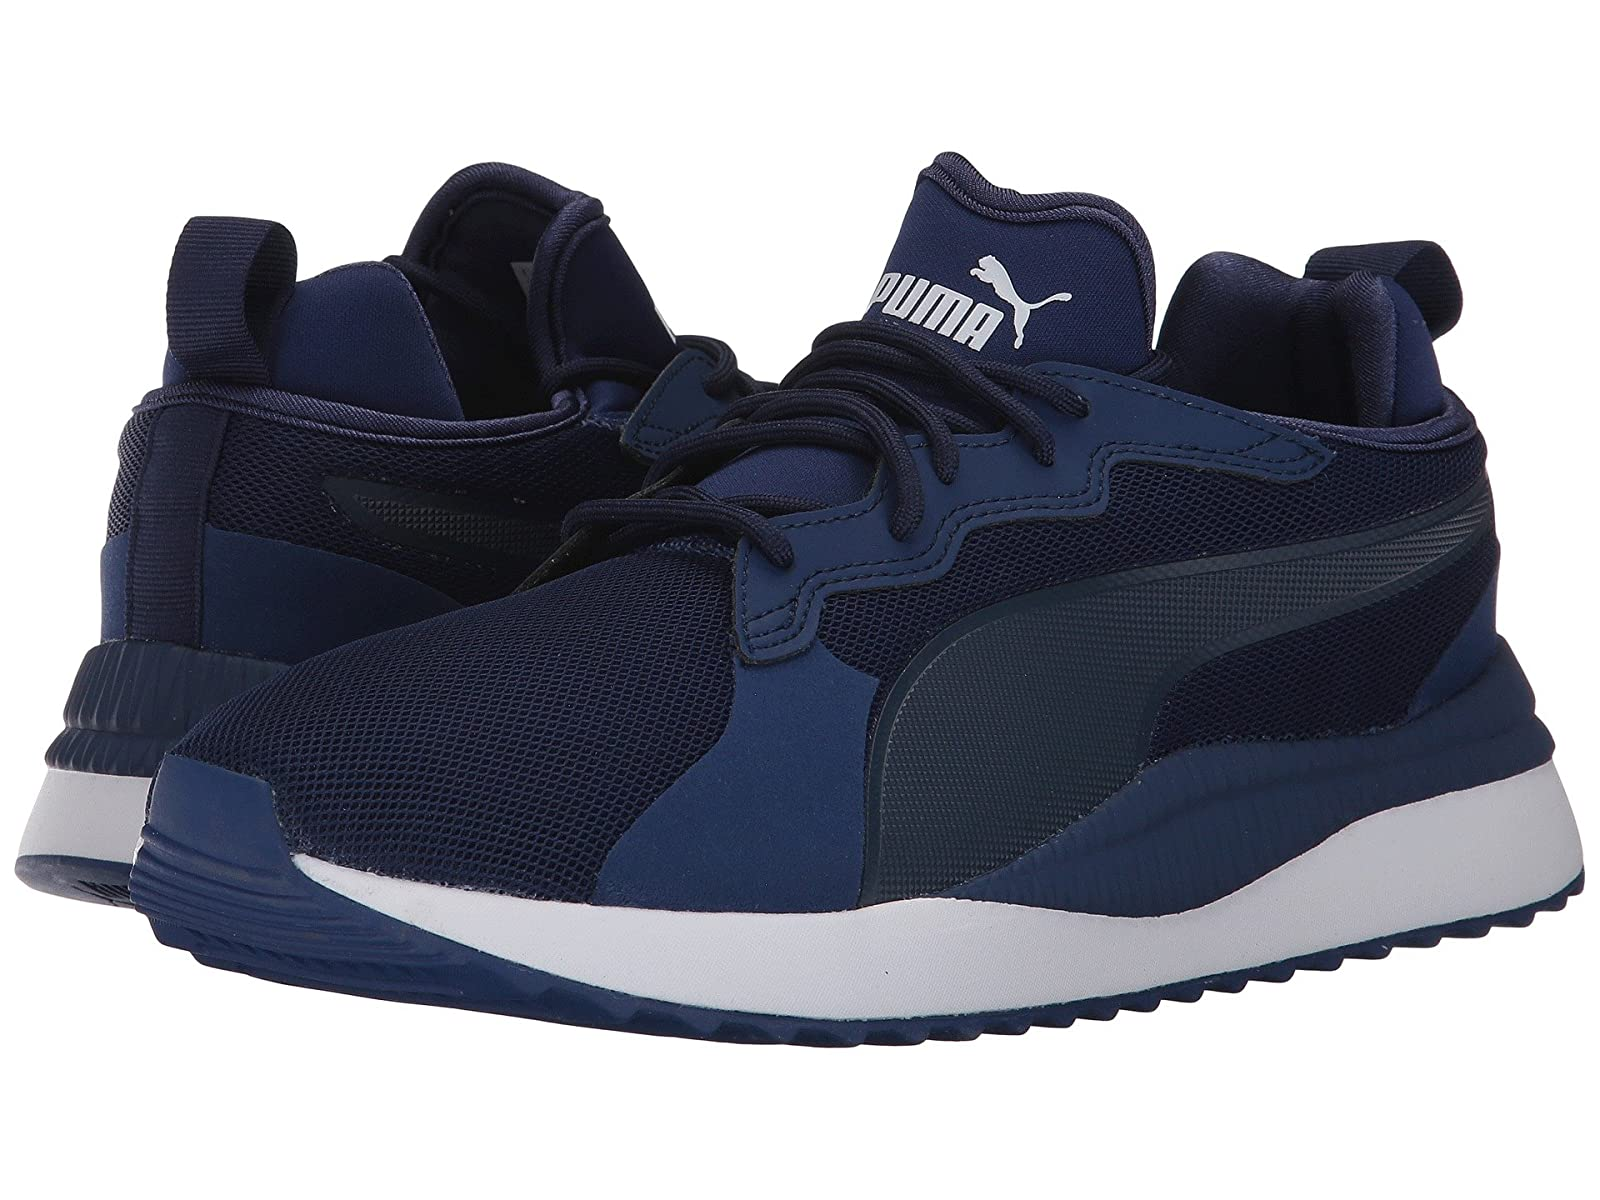 PUMA Pacer NextCheap and distinctive eye-catching shoes